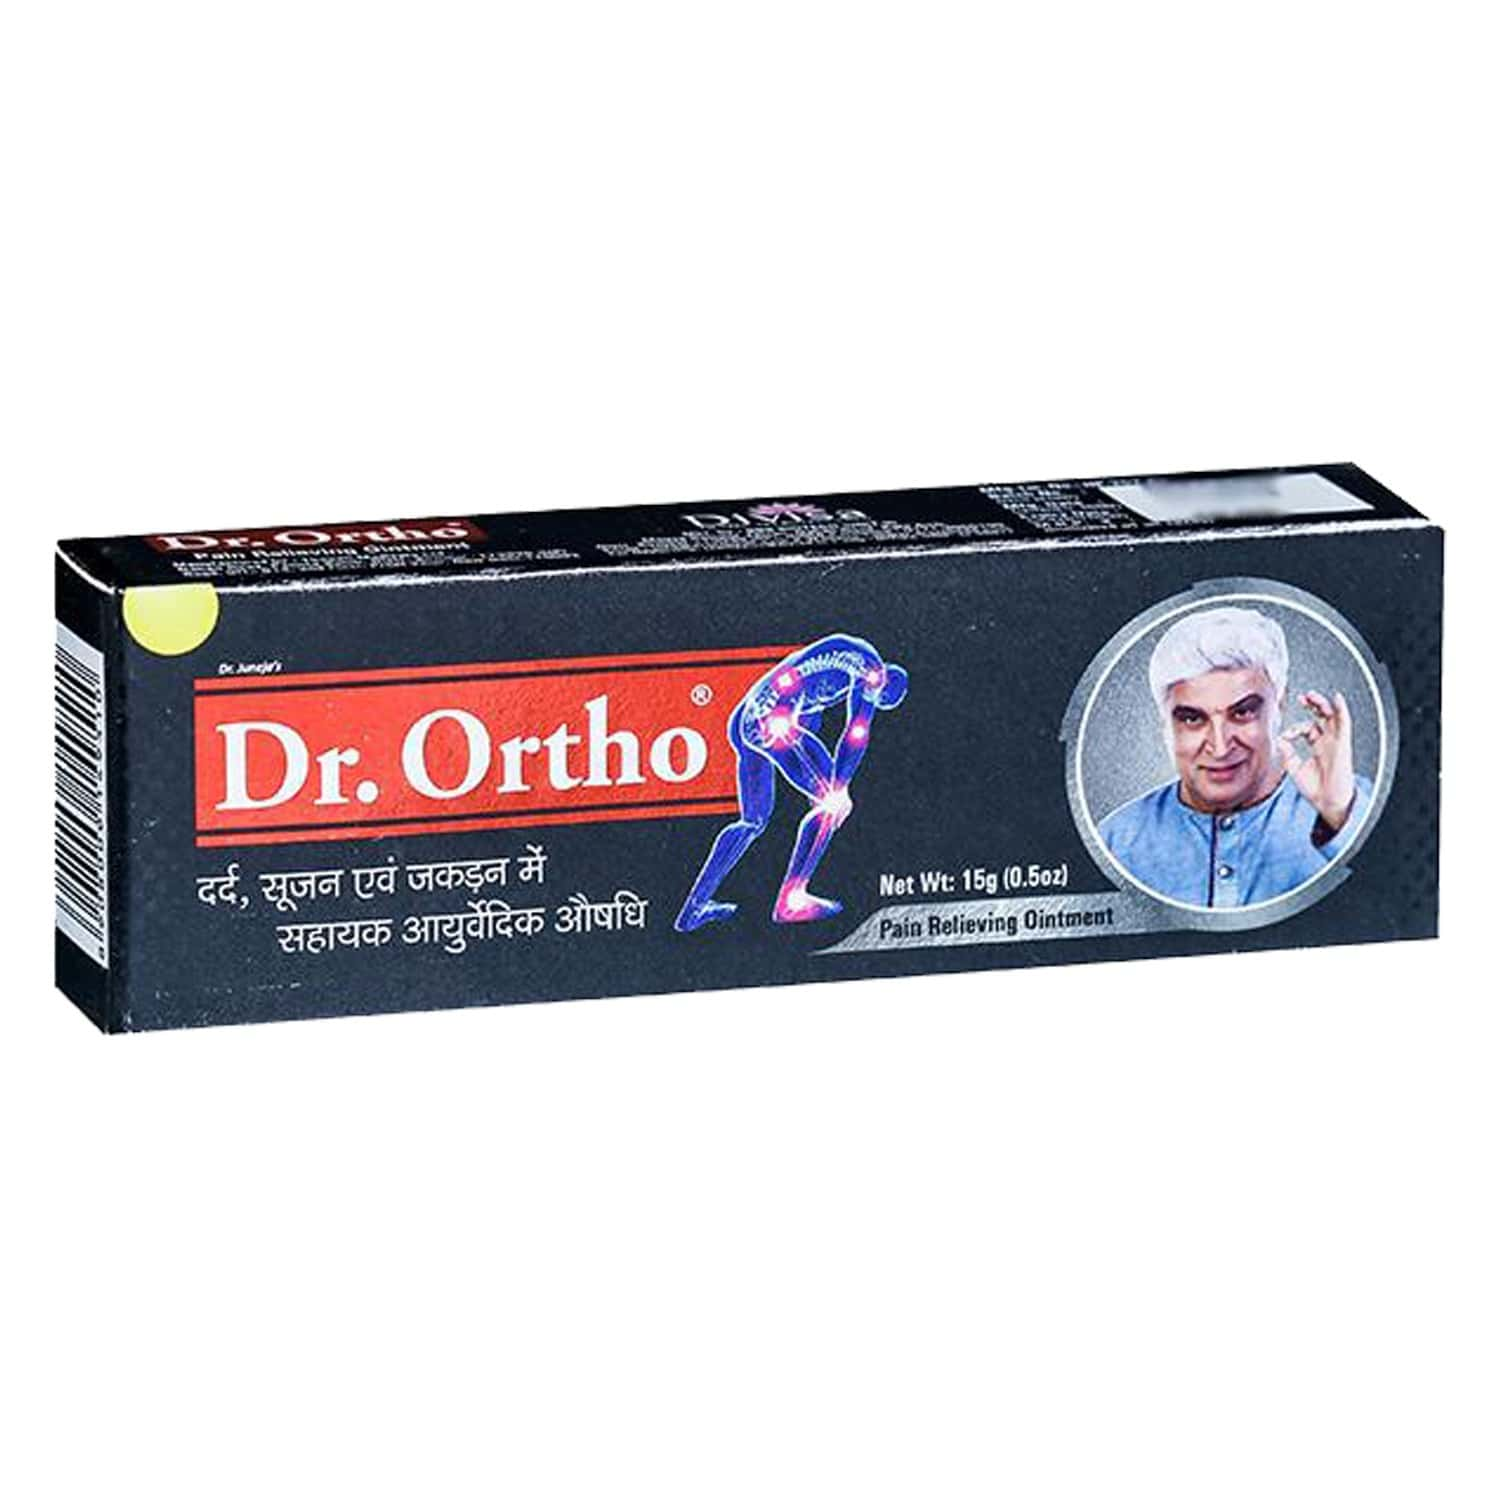 Dr.ortho Ointment - 15g